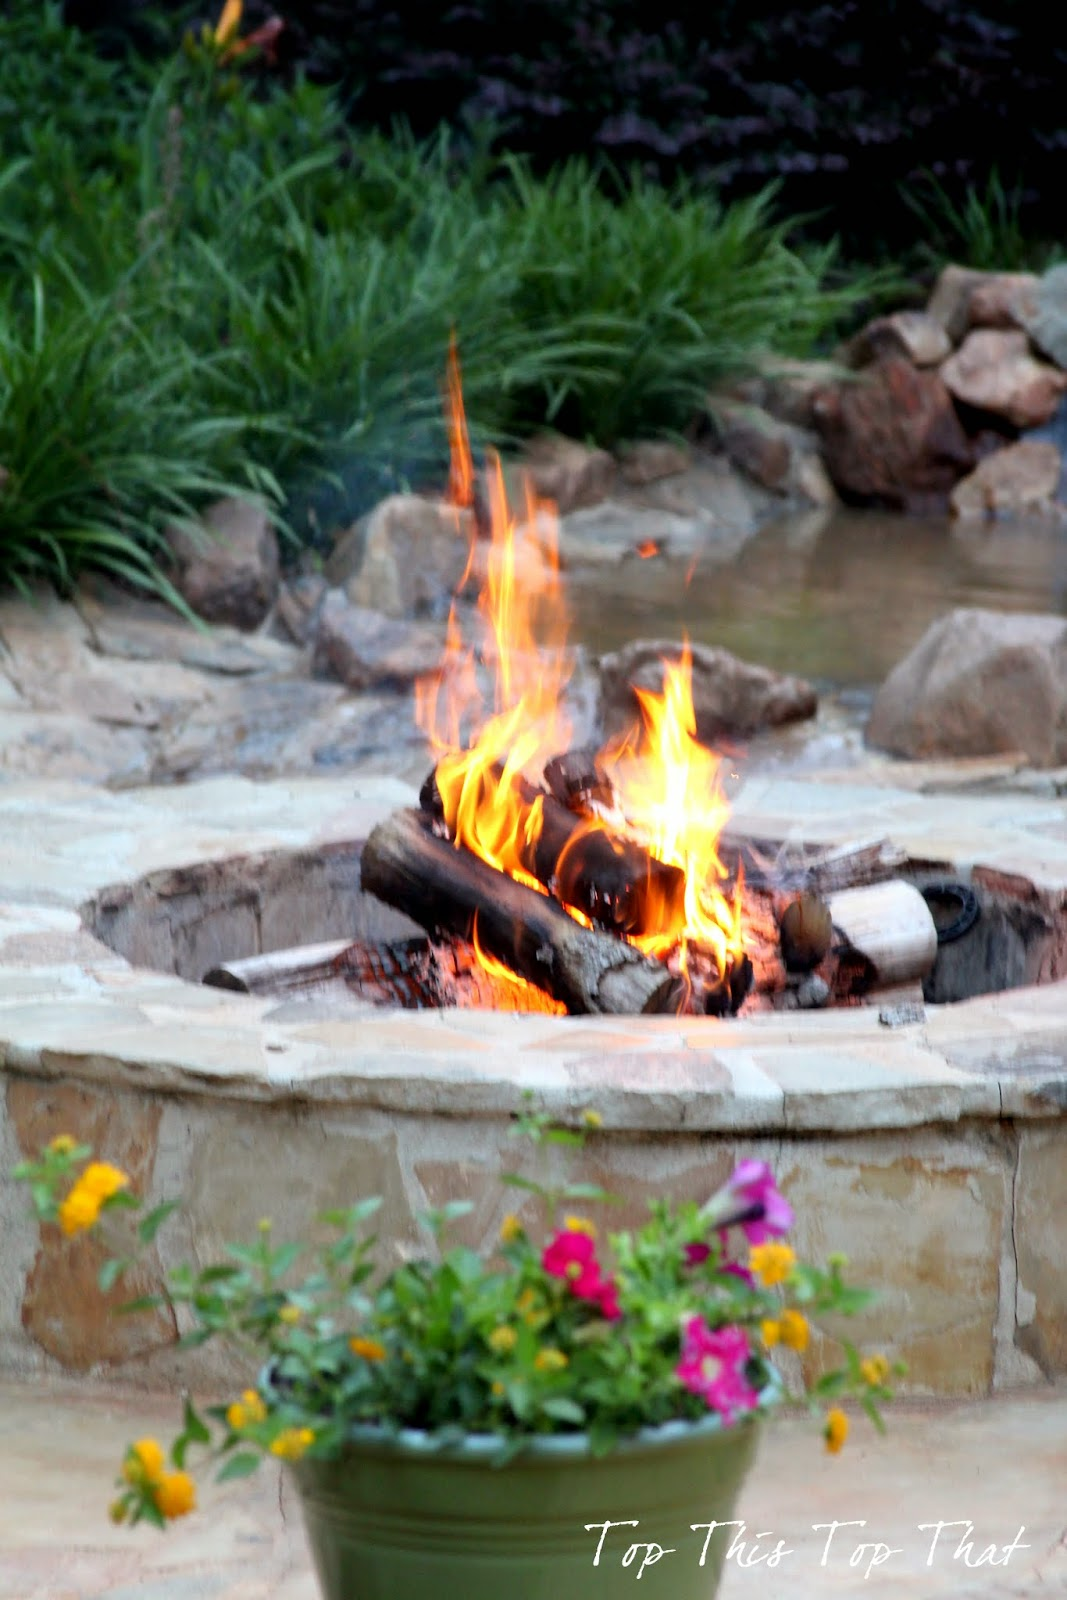 Water And Fire Features For Backyards : Our proudest outdoor moment and our DIY Water Feature